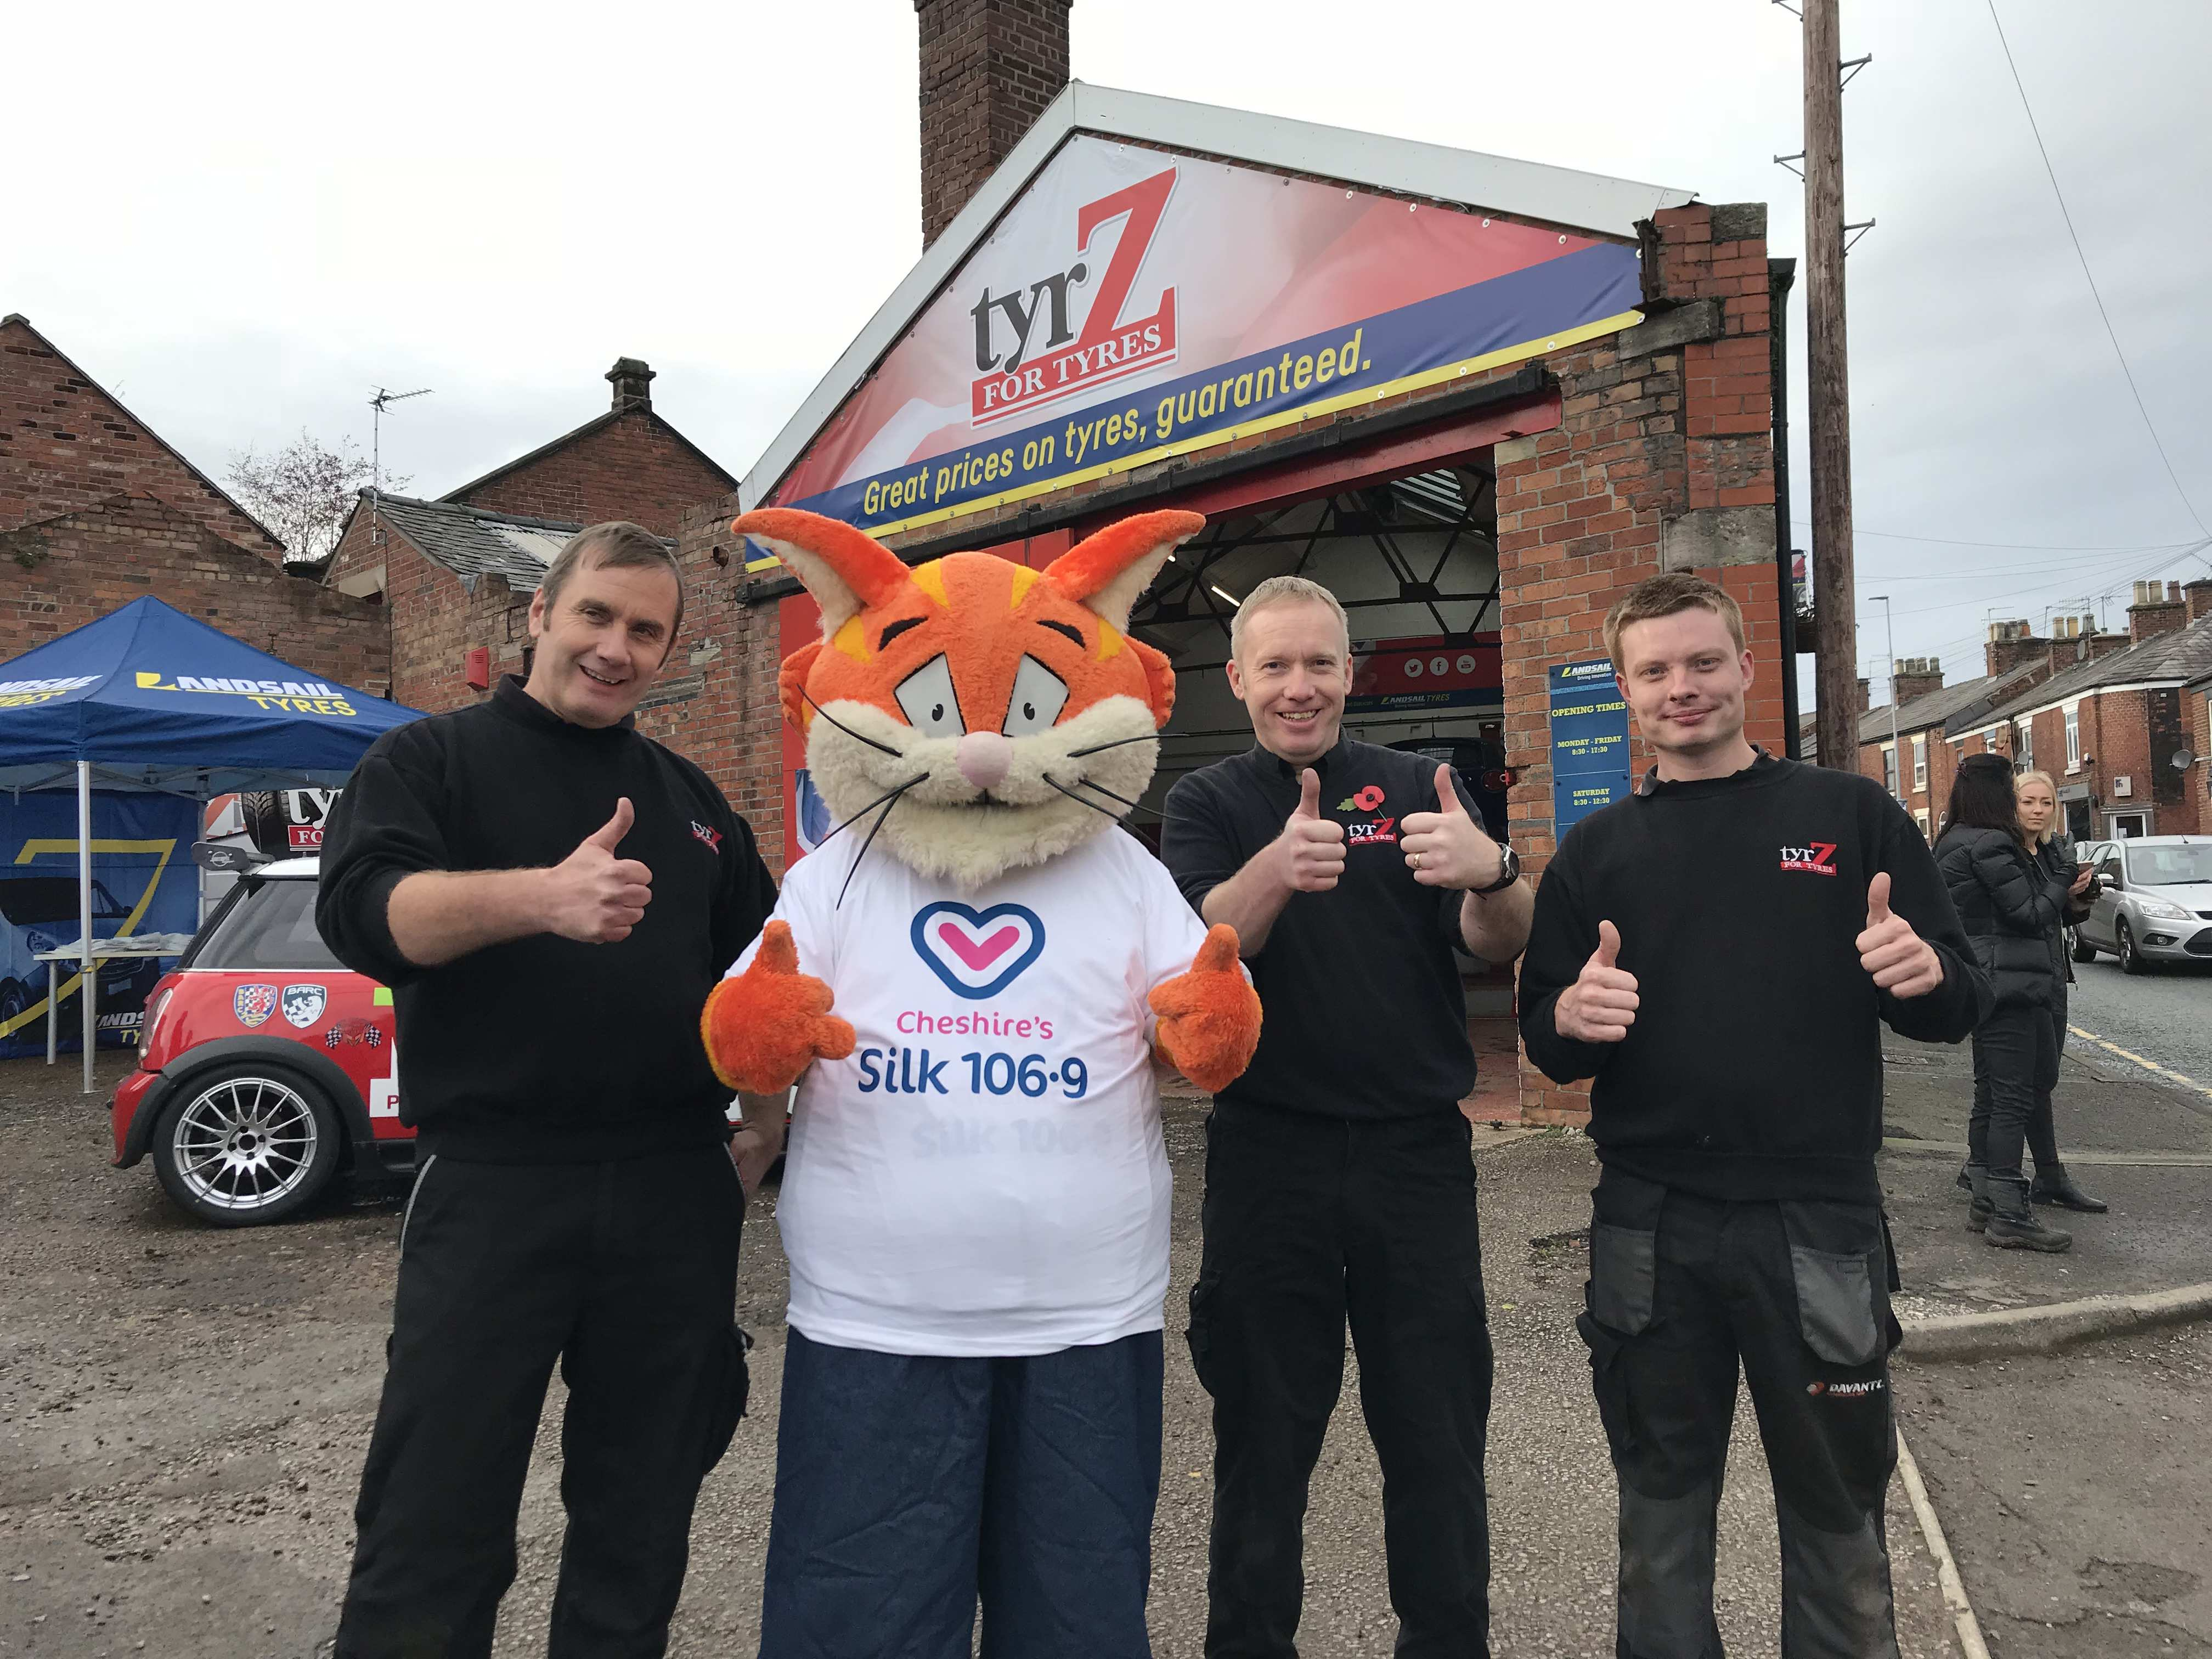 TYRZ in Congleton grand opening day